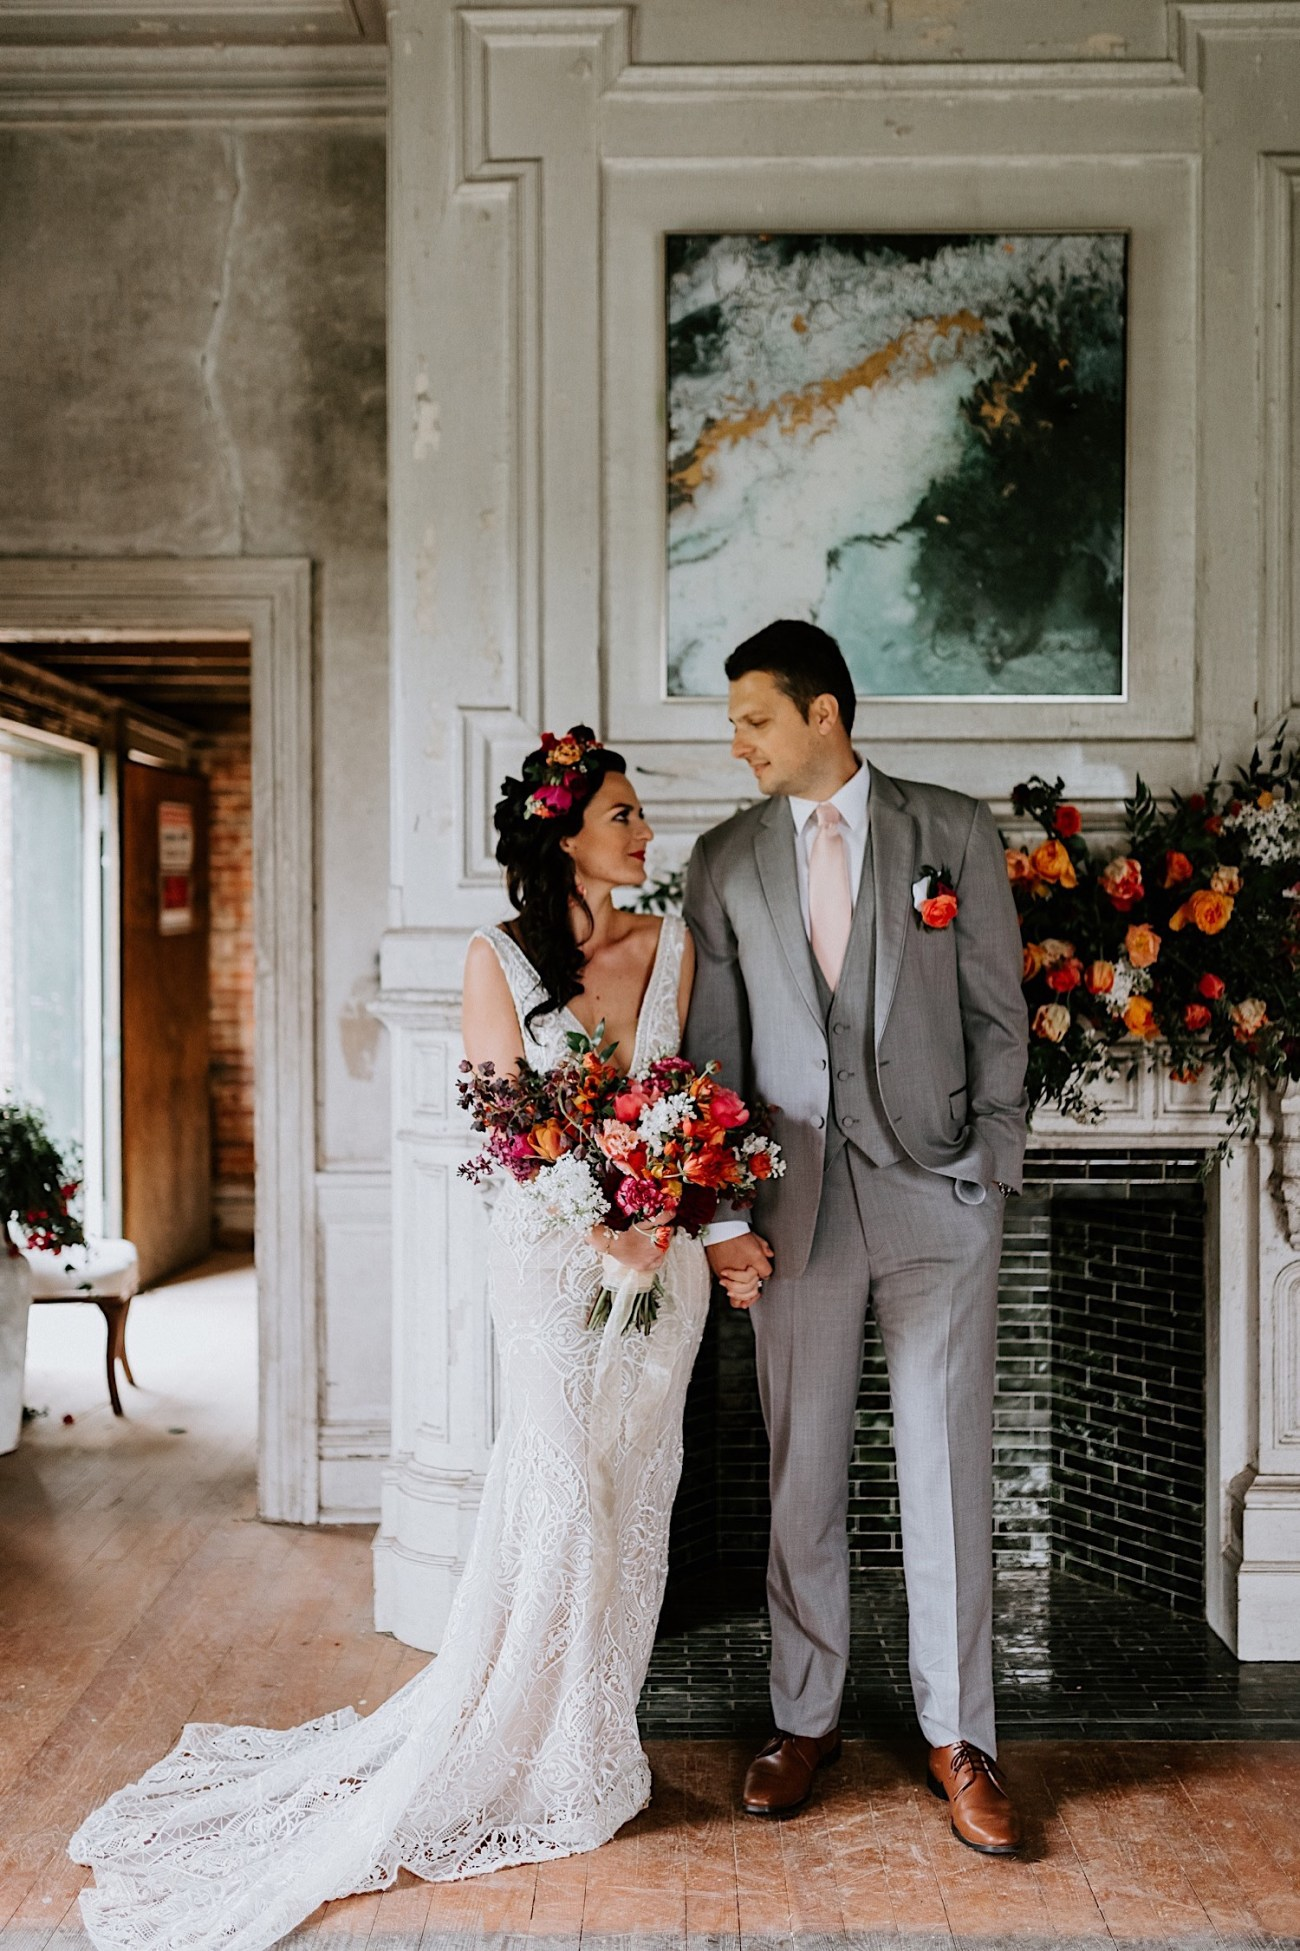 Barnsley Manor Wedding Philadelphia Wedding Photographer Hacienda Wedding Inspiration 33